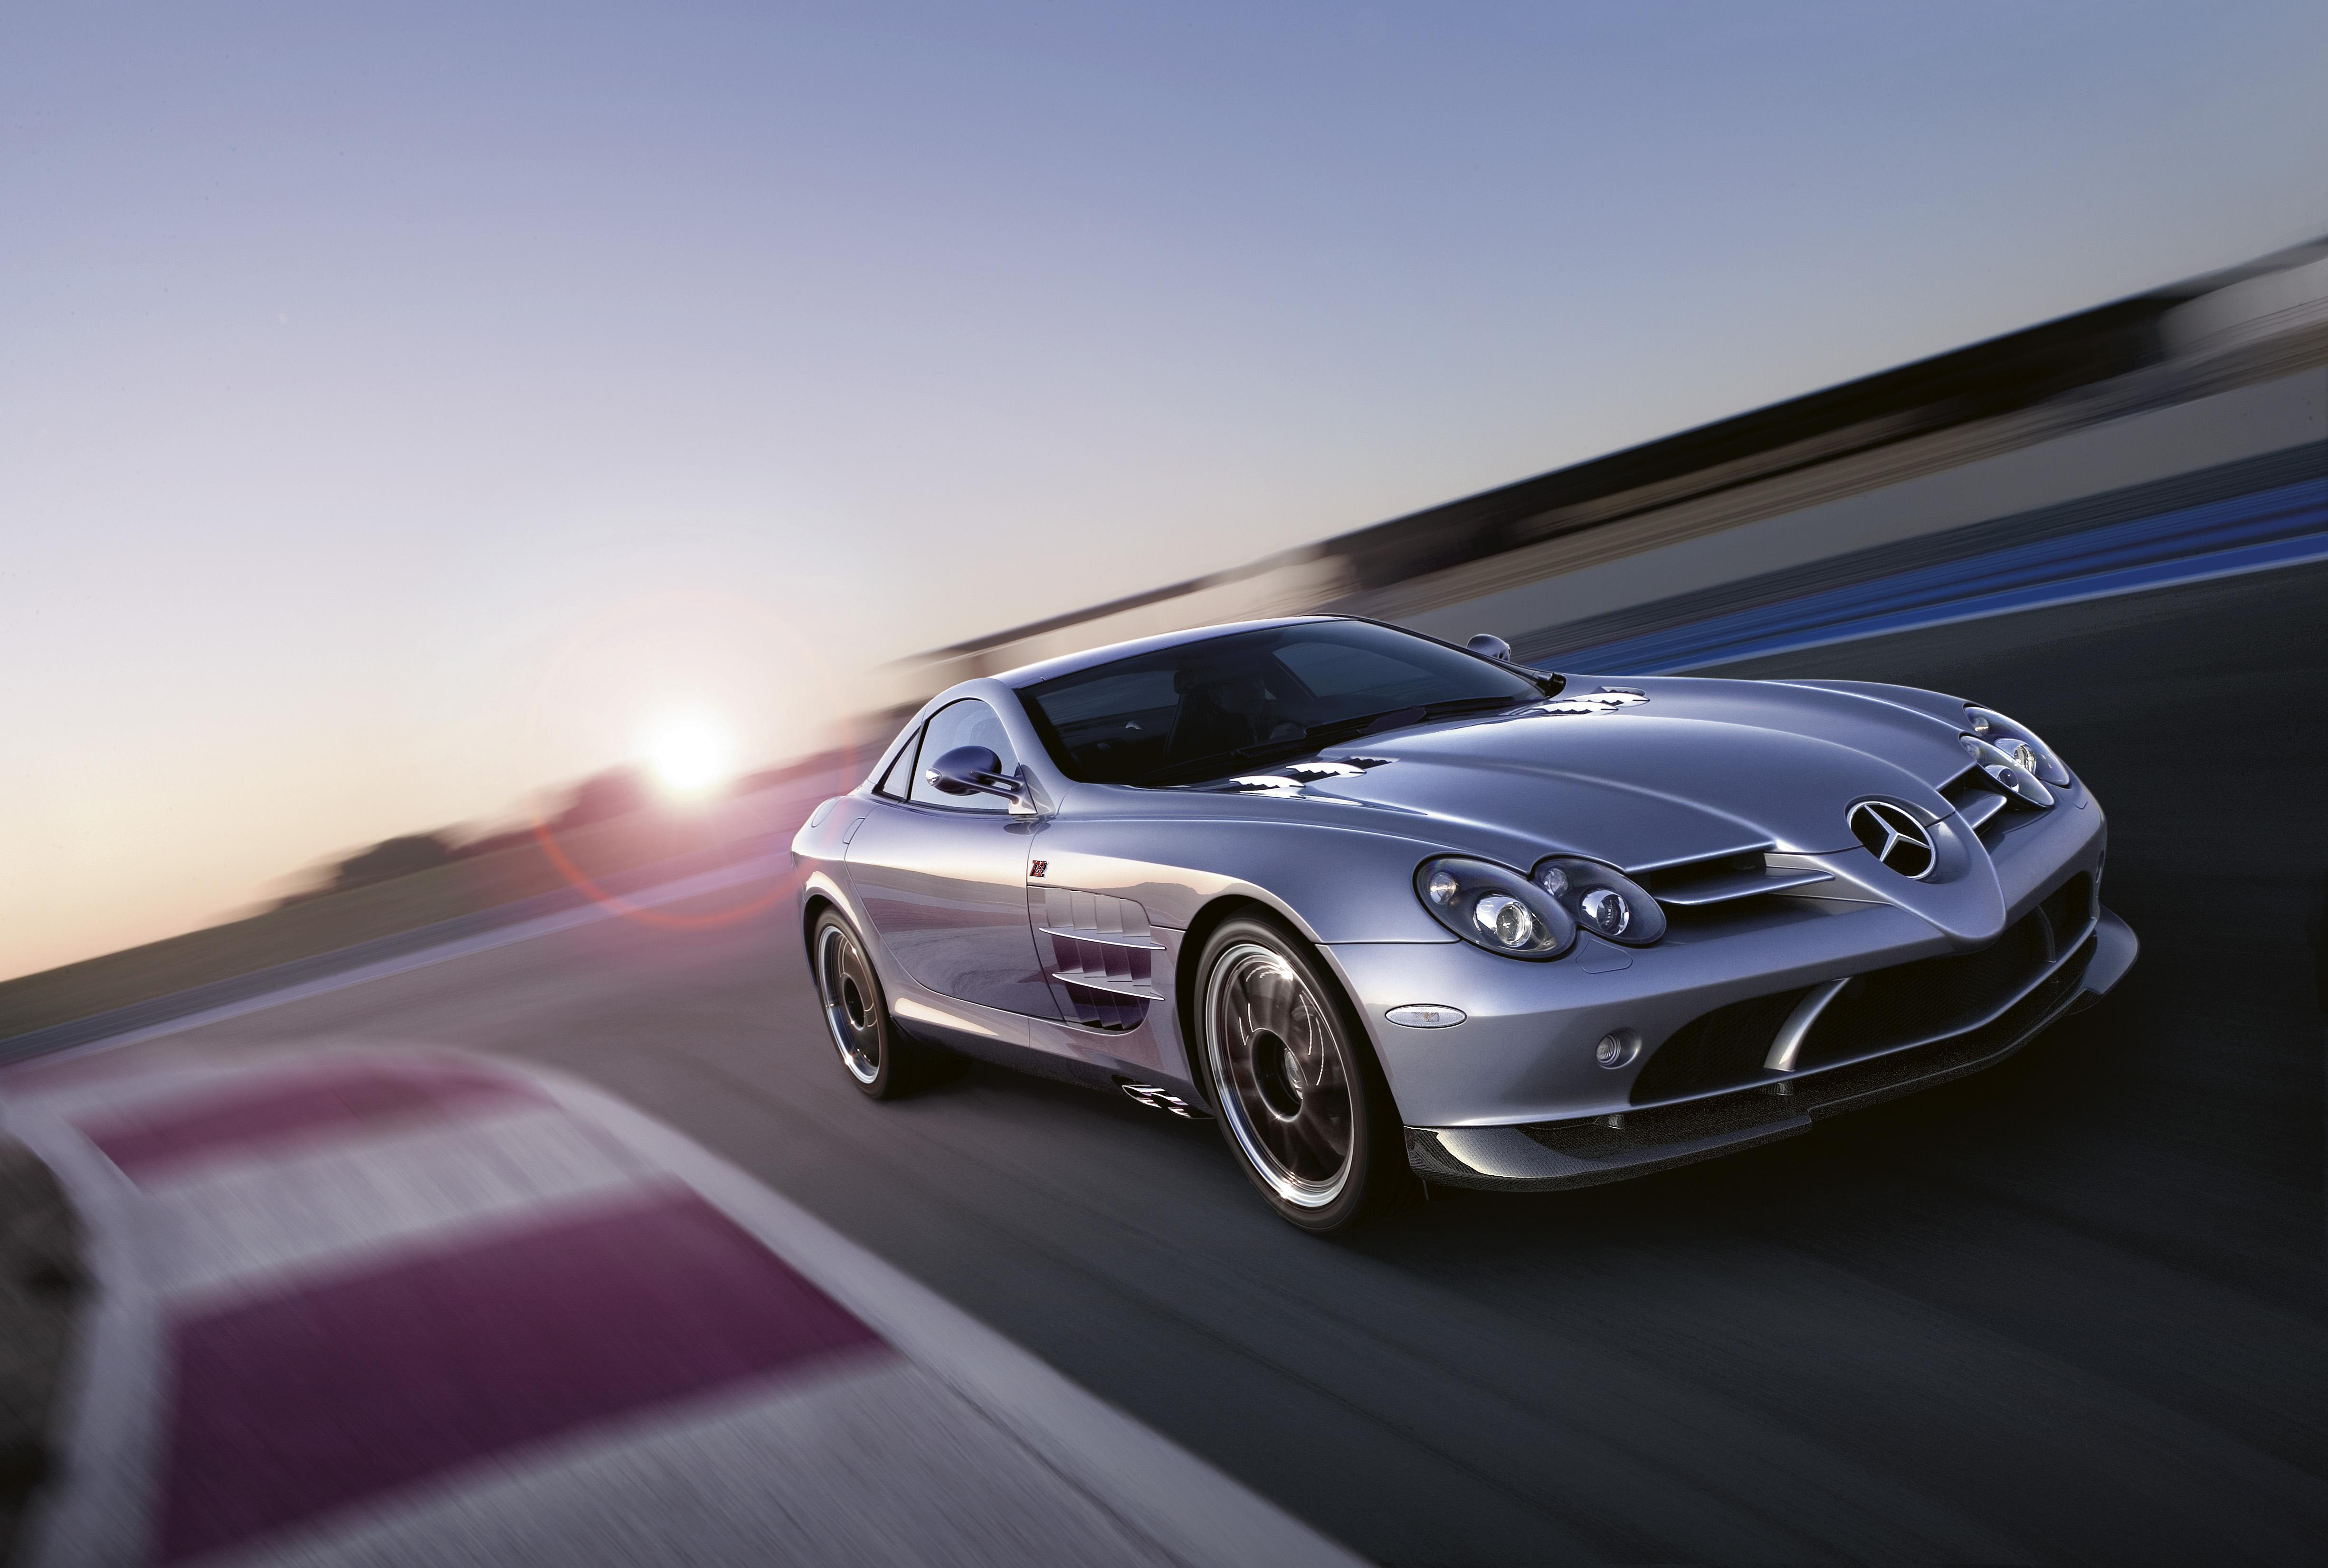 2007 mercedes benz slr mclaren 722 edition review gallery top speed. Black Bedroom Furniture Sets. Home Design Ideas